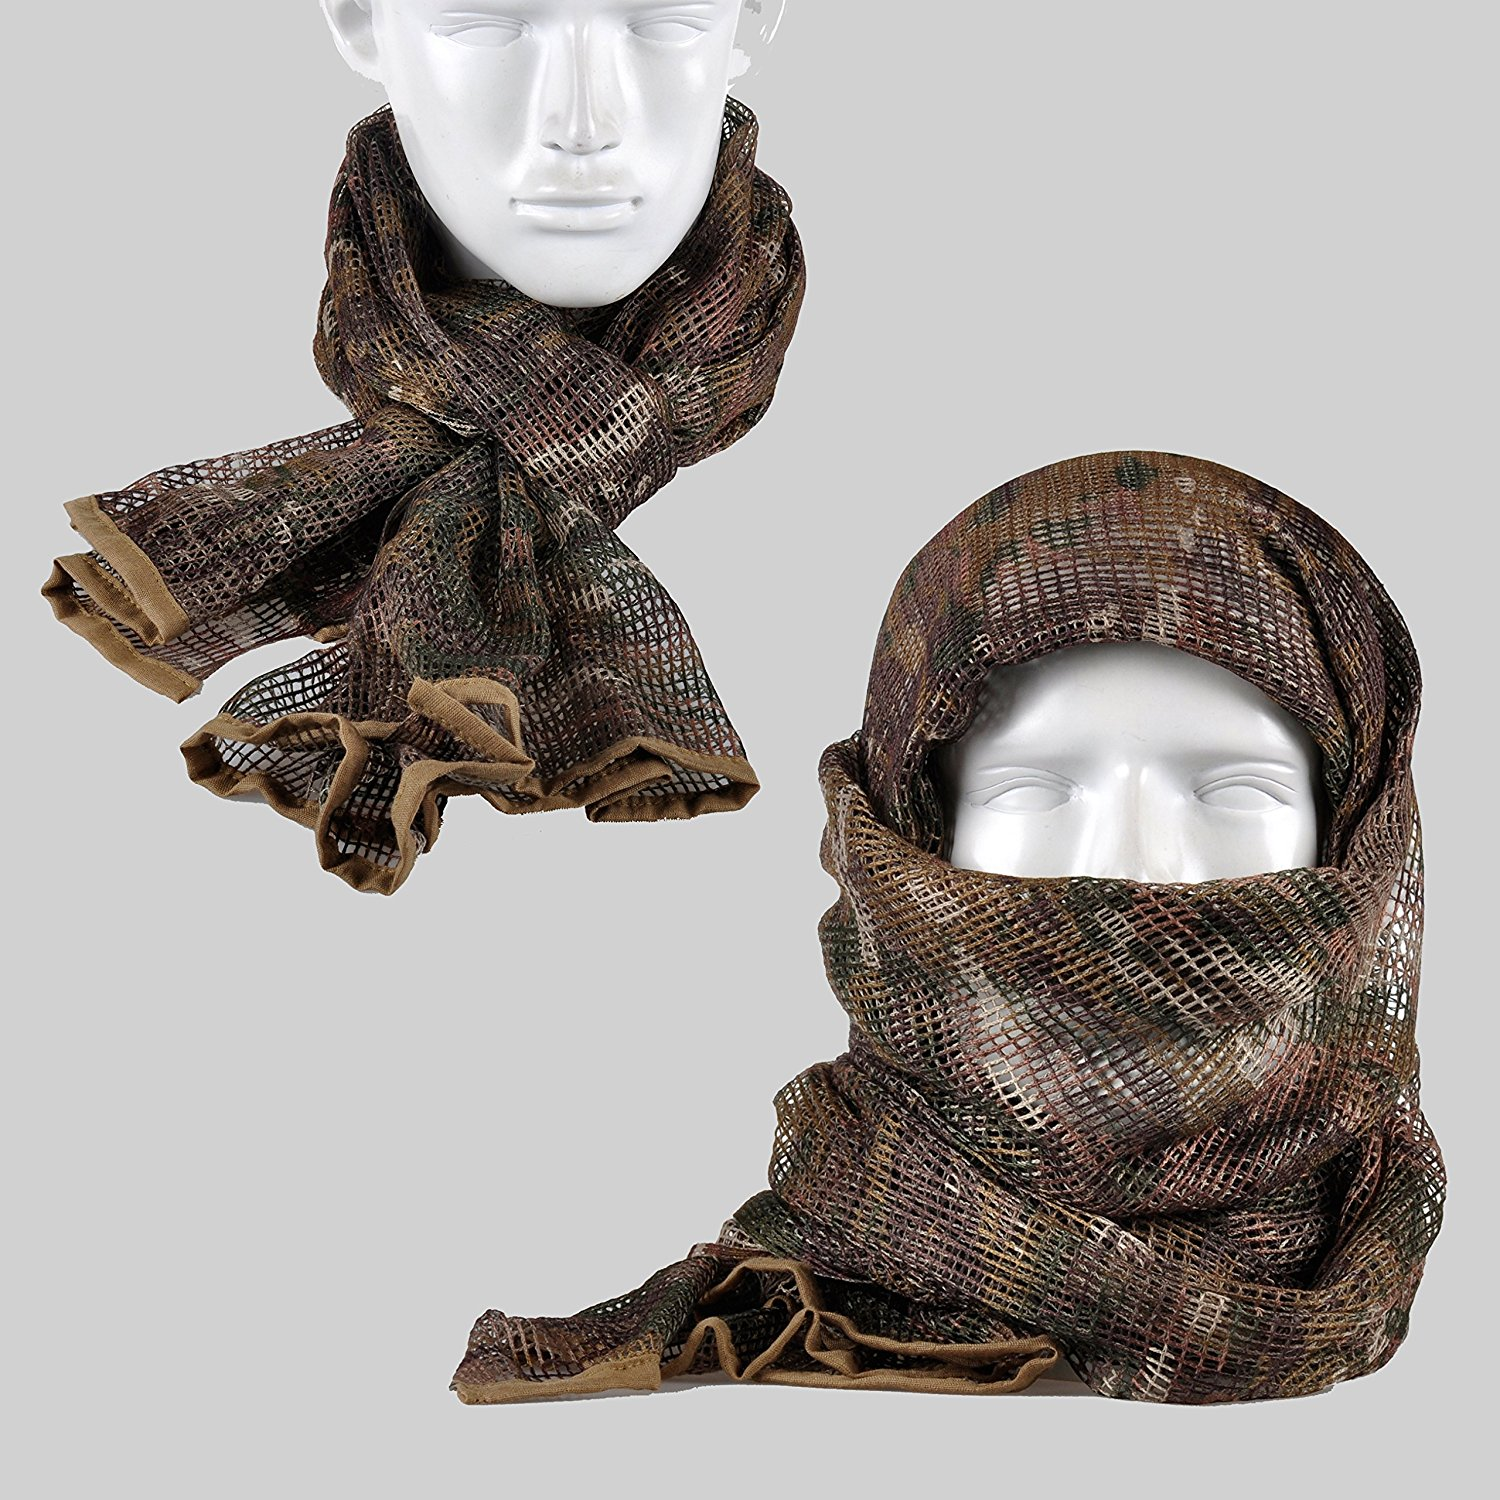 Multicam Pattern Camouflage Camo Army Mesh Breathable Scarf Wrap Mask  Shemagh Veil 0e80faebf3d2